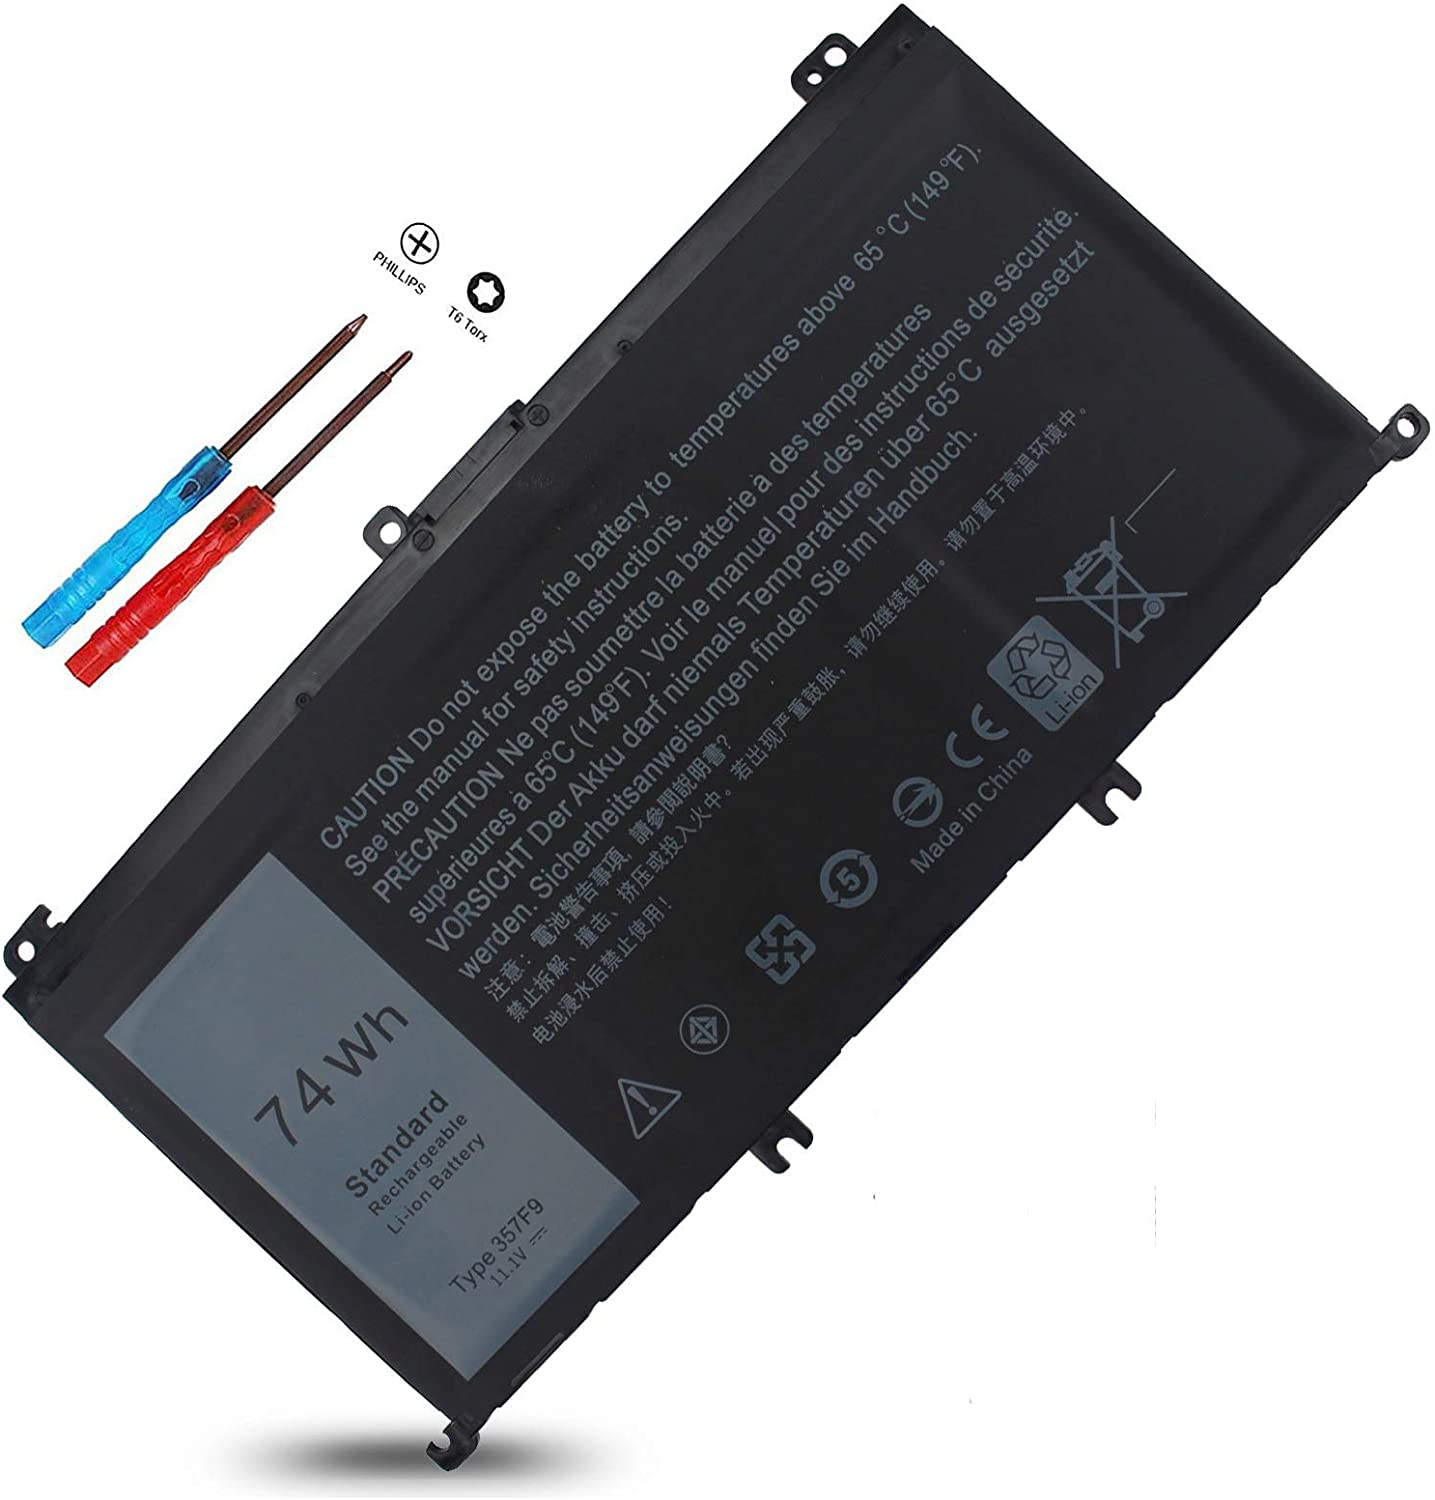 357F9 Battery 11.4 V 74Wh for Dell Inspiron 15 7000 Gaming Series 7559 7557 7567 7566 7759 5576 5577 15-7559 i7559 INS15PD P57F 071JF4 71JF4 0GFJ6 0357F9 Type P65F P65F001 P57F003 11.4V